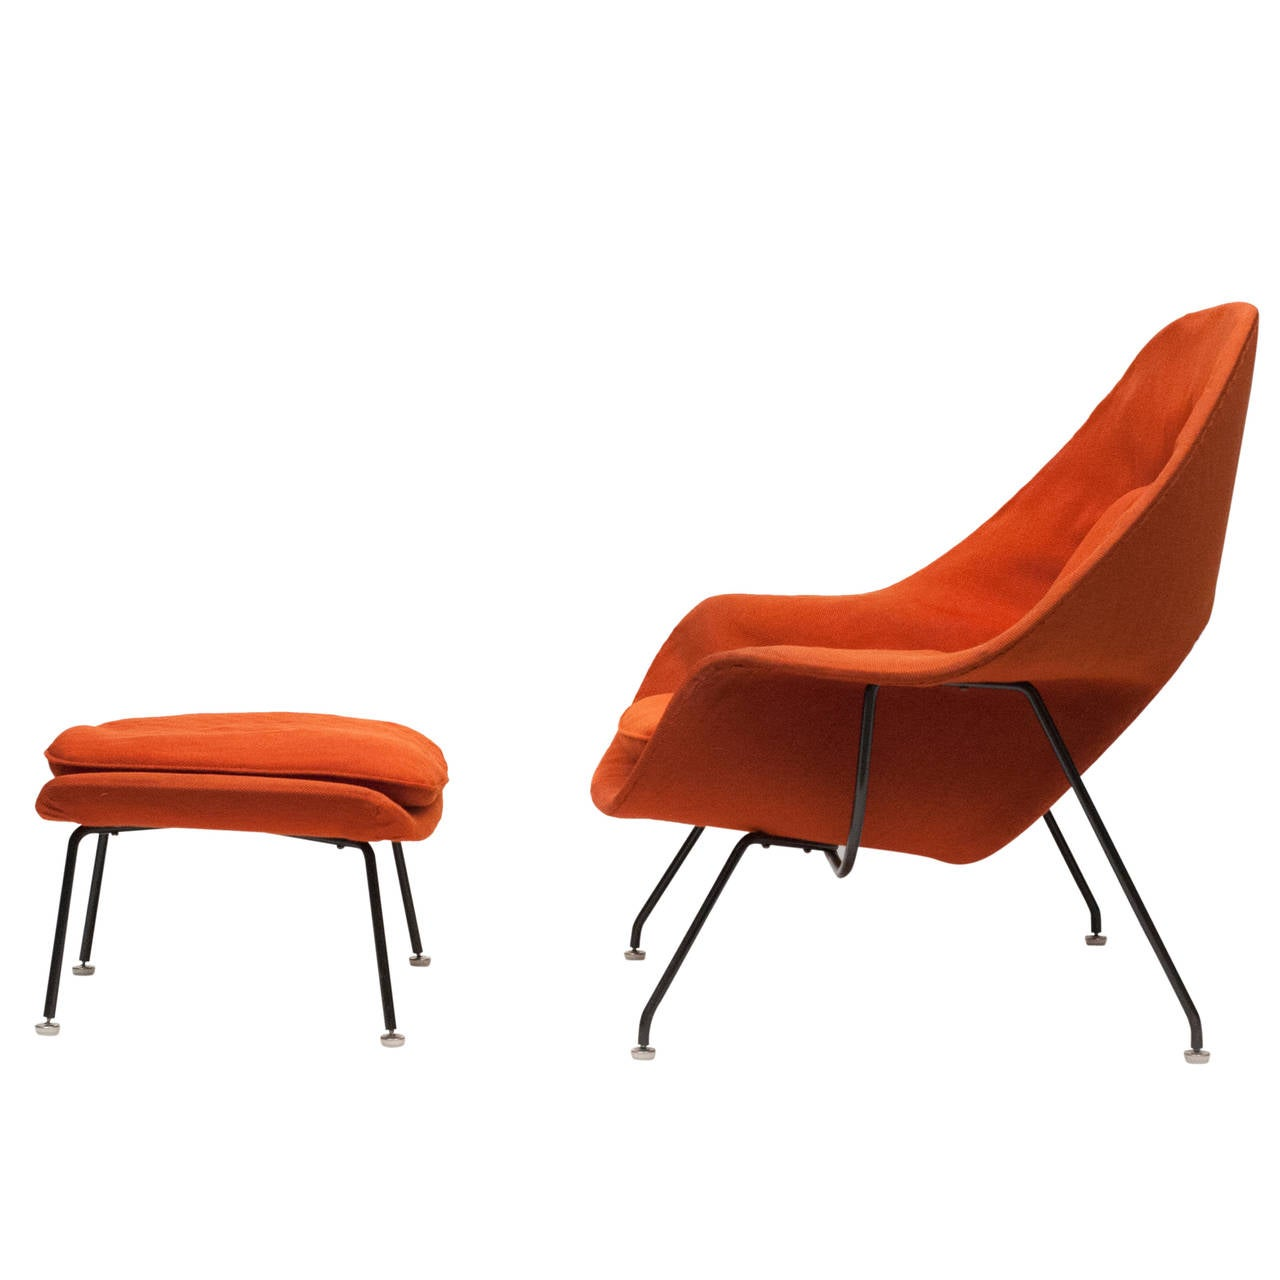 Knoll womb chair - Early Womb Chair With Black Frame And Ottoman By Eero Saarinen For Knoll 1950s 1